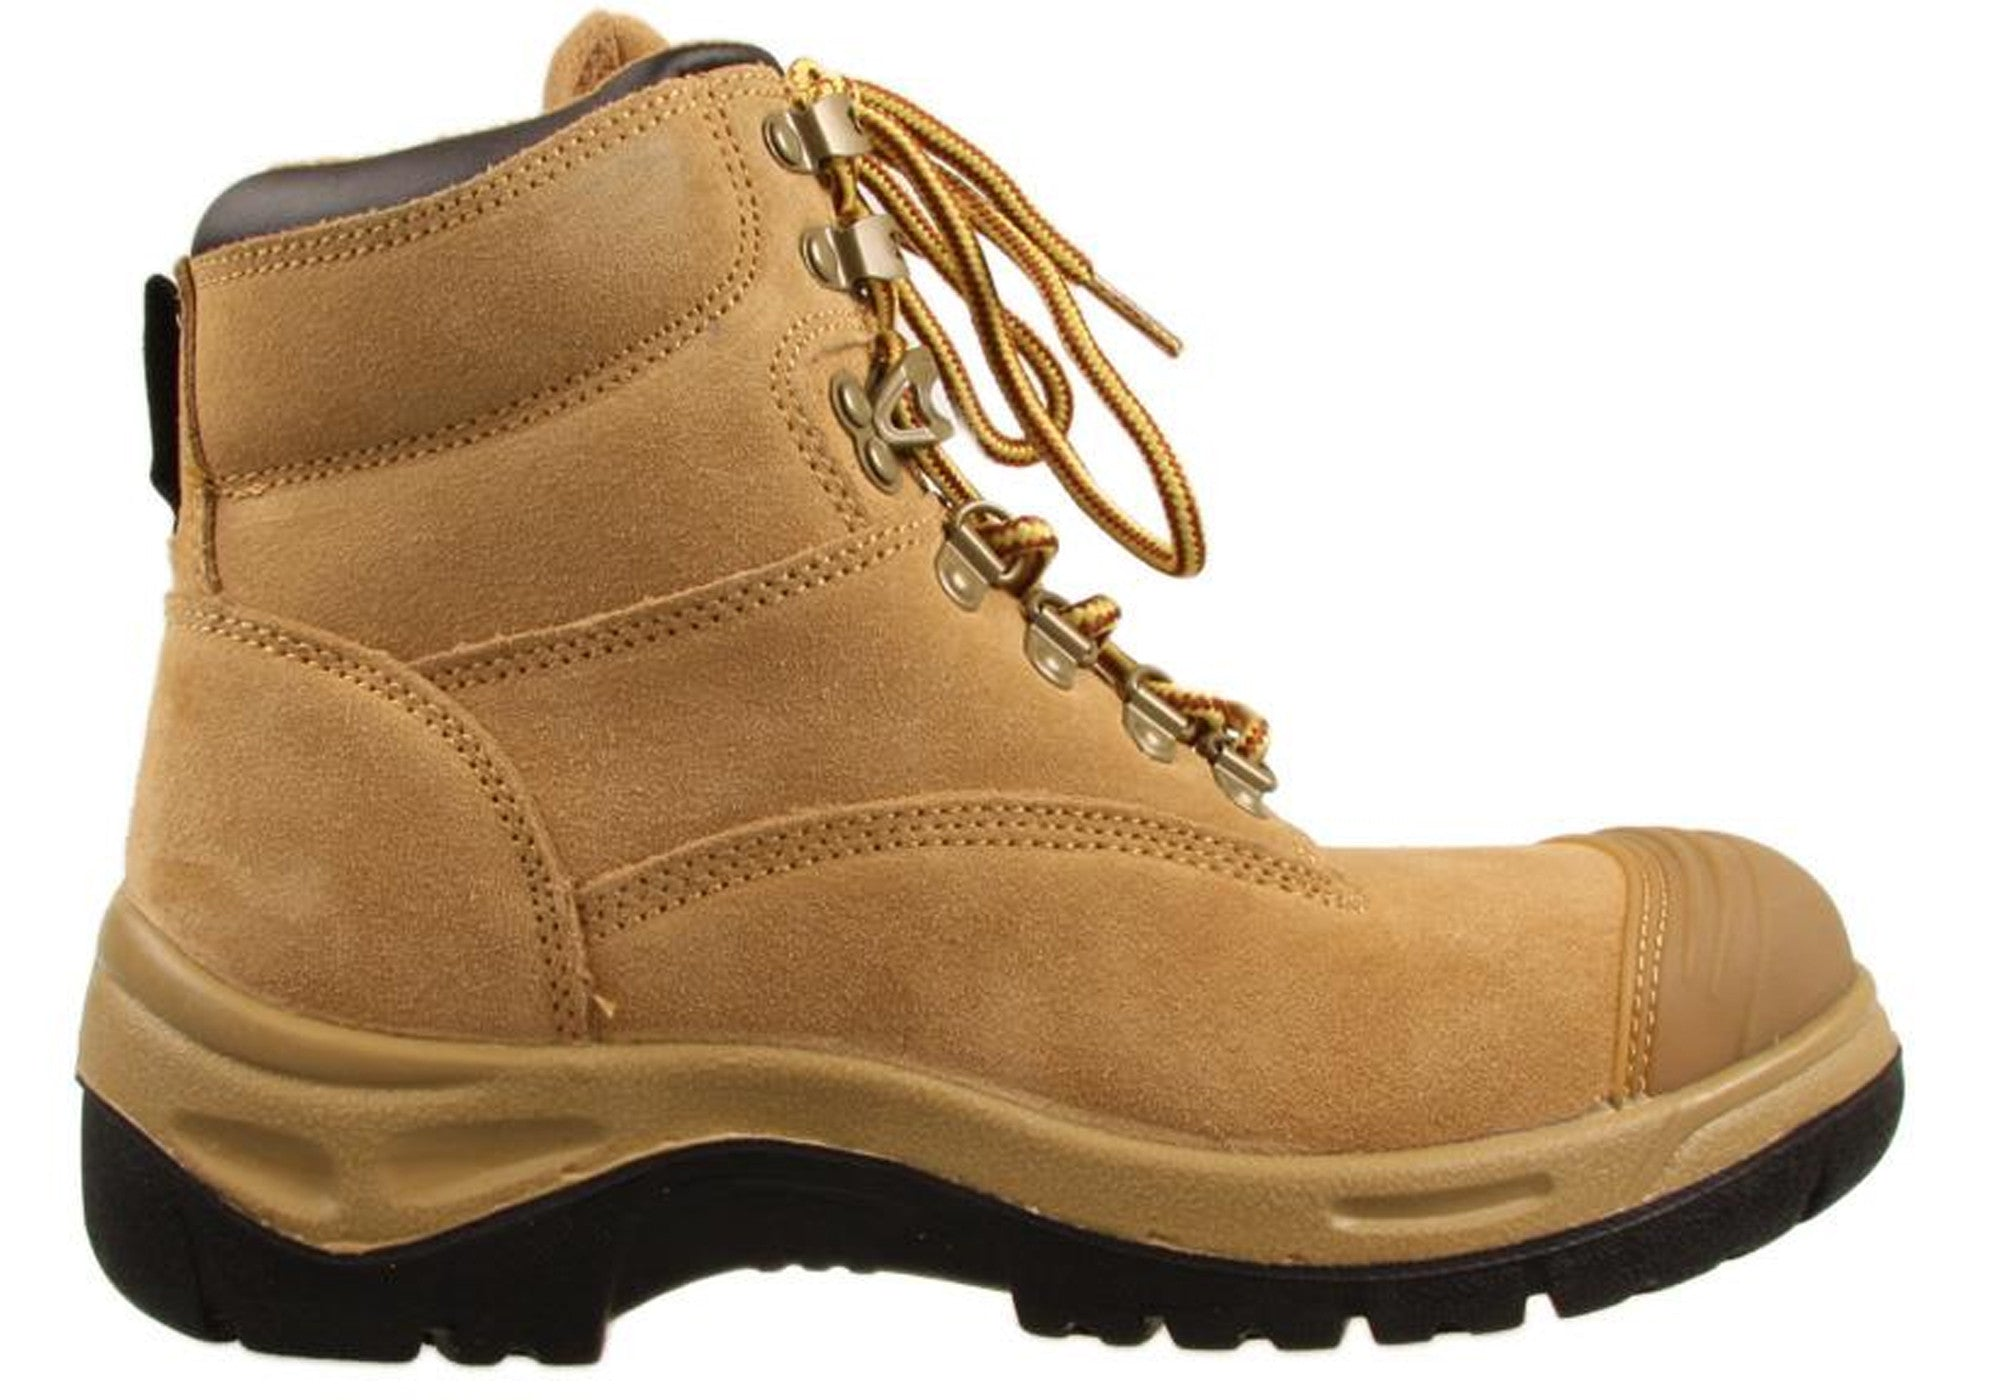 Woodlands New Darwin Mens Leather Steel Toe Work Boots With Side Zip ... fe54321d0